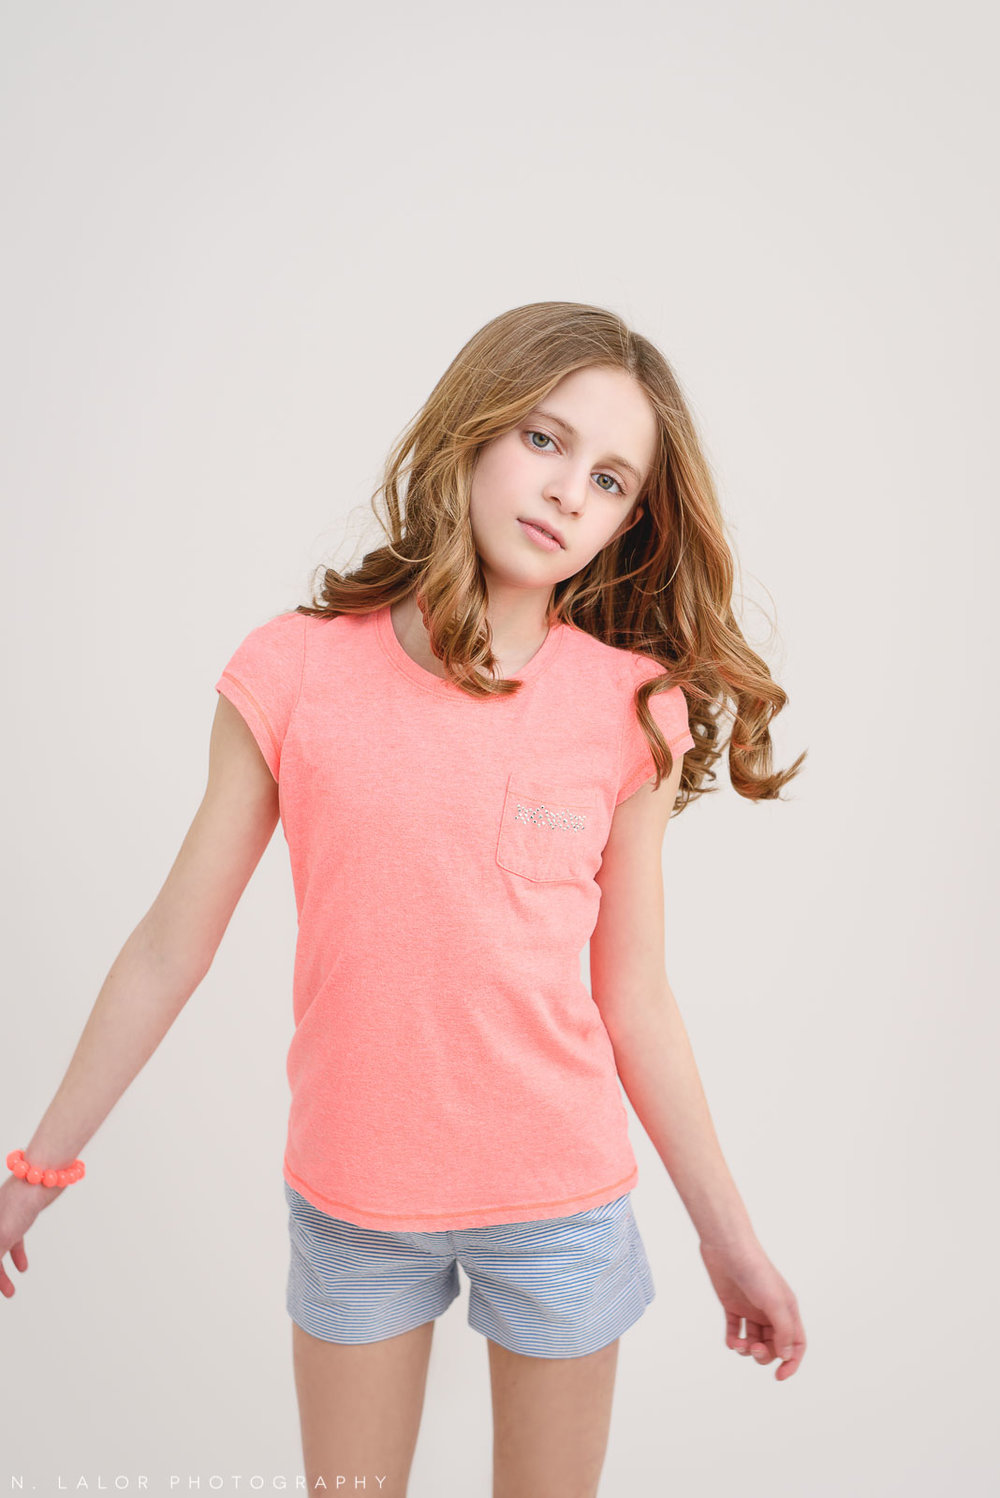 Natural candid portrait. Tween Studio photoshoot by N. Lalor Photography, located in Greenwich, CT.